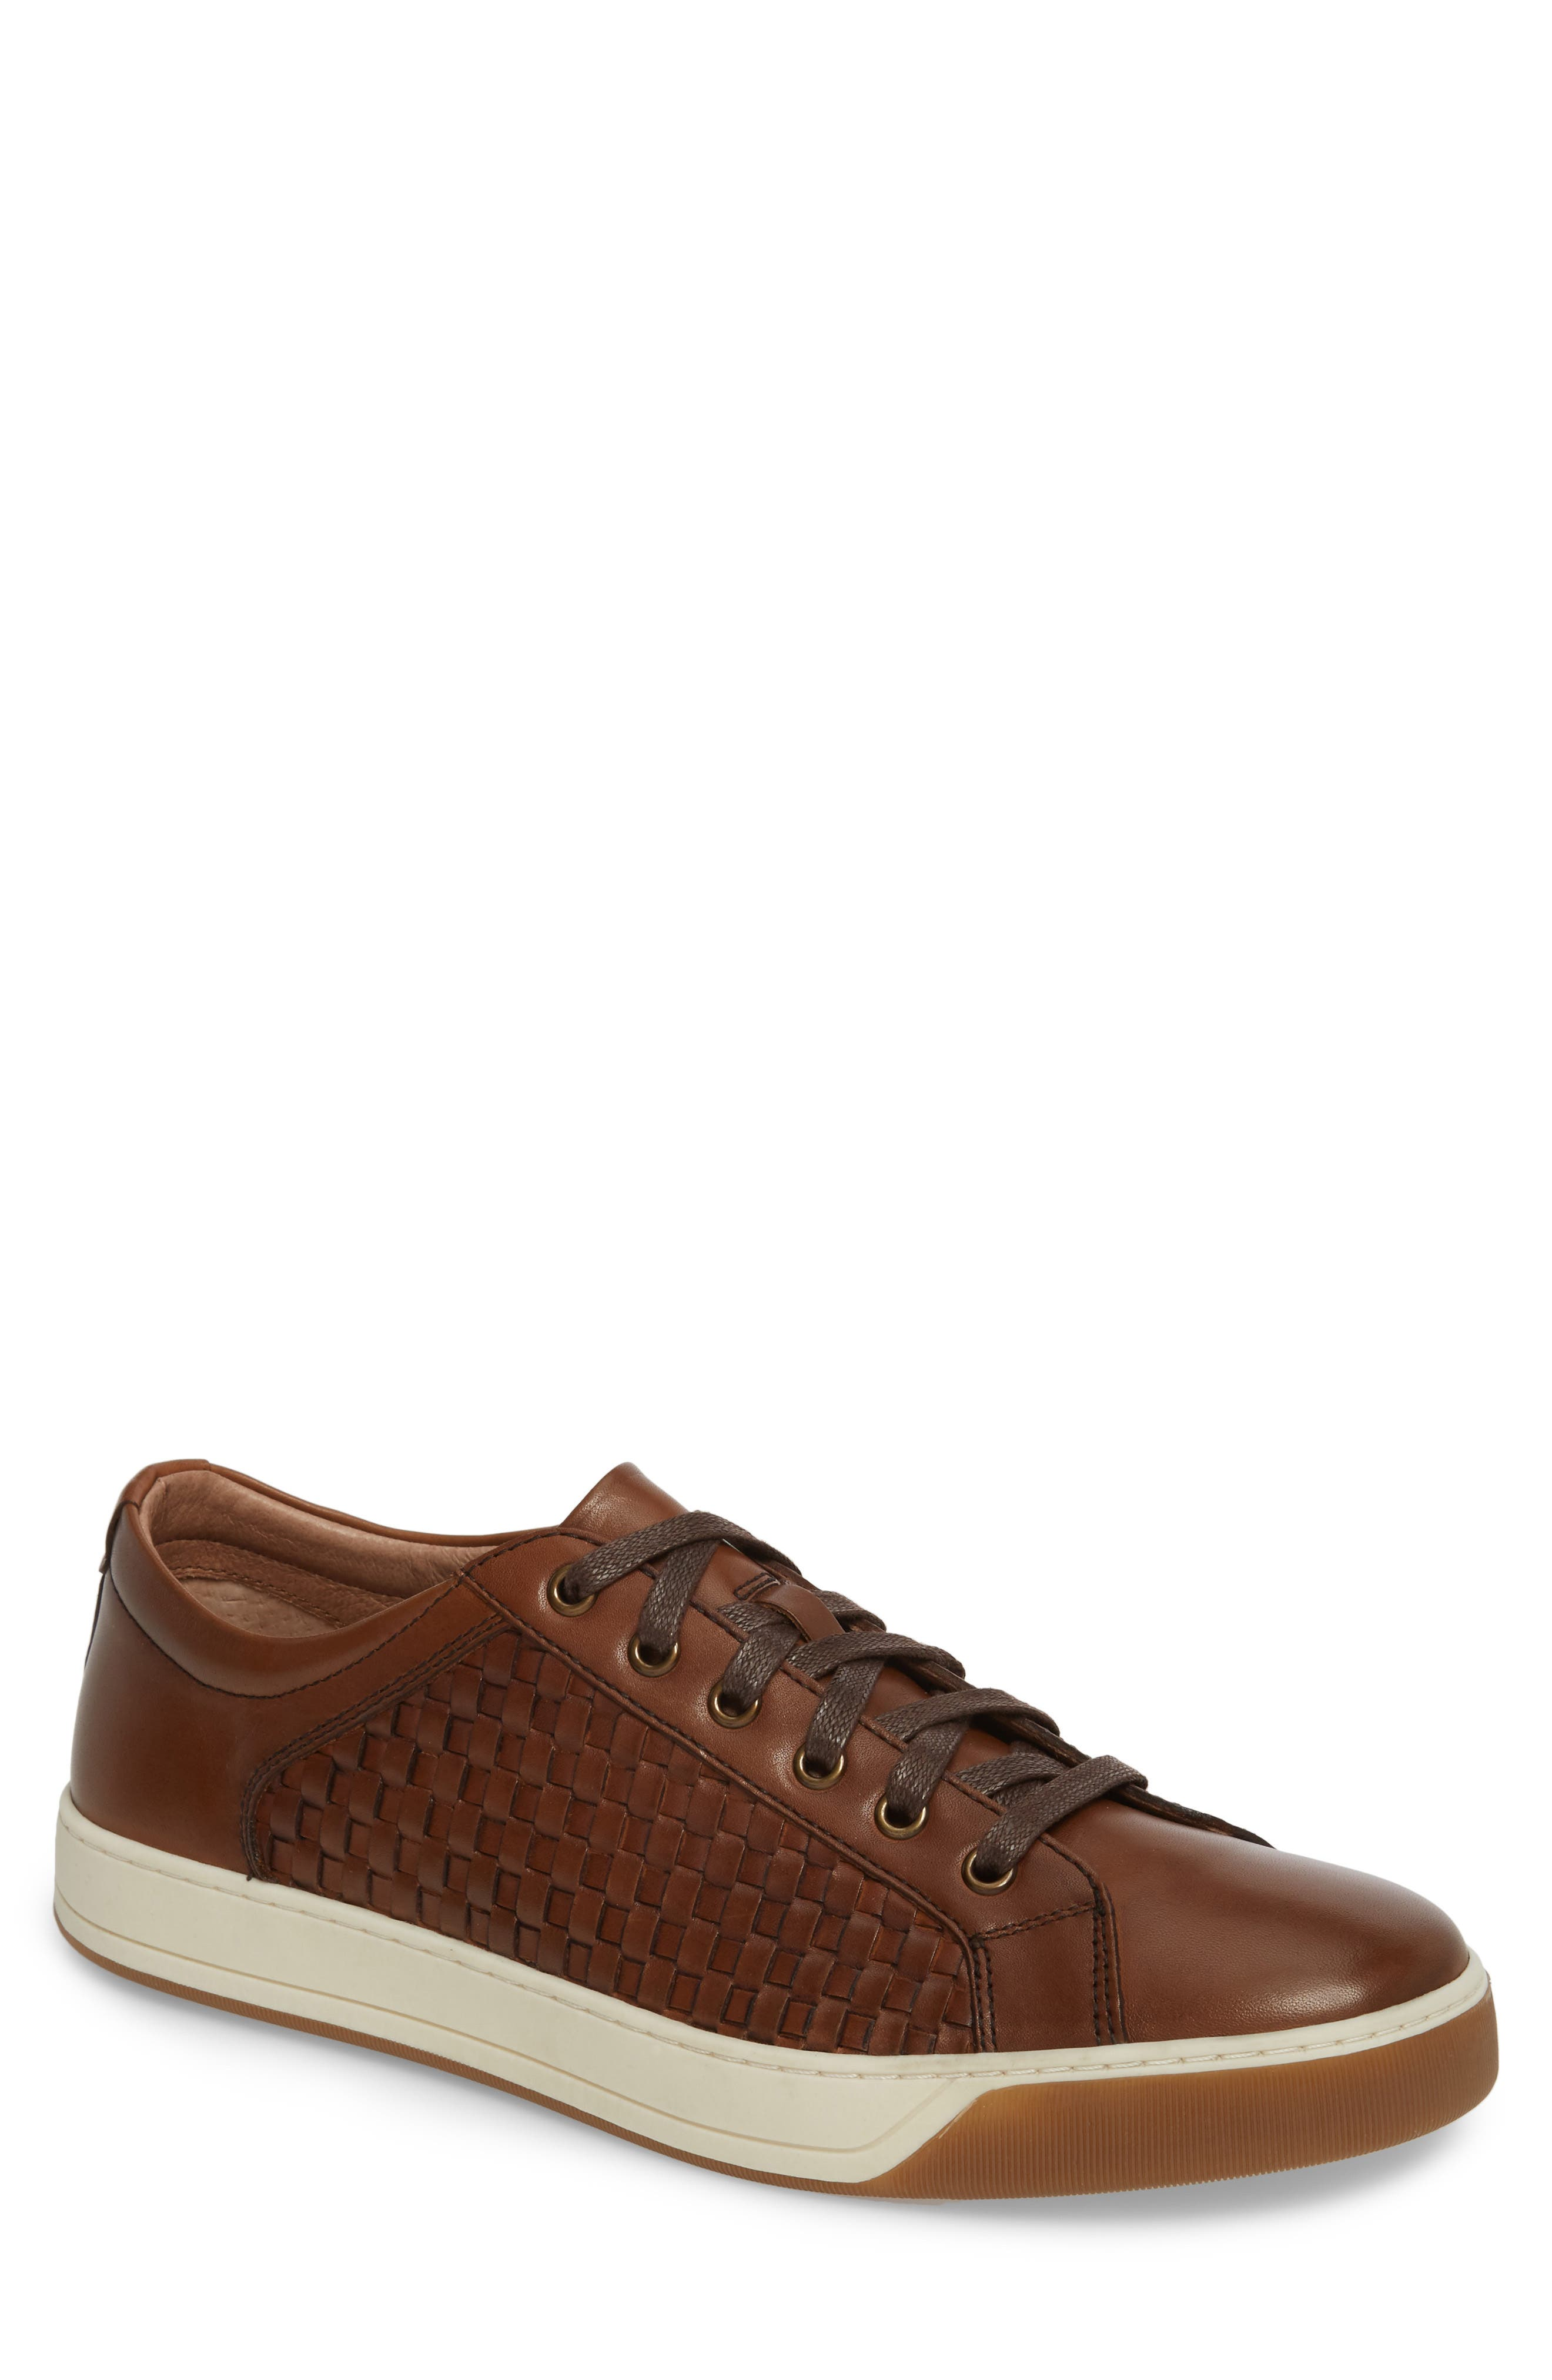 Allister Woven Low Top Sneaker,                         Main,                         color, BROWN